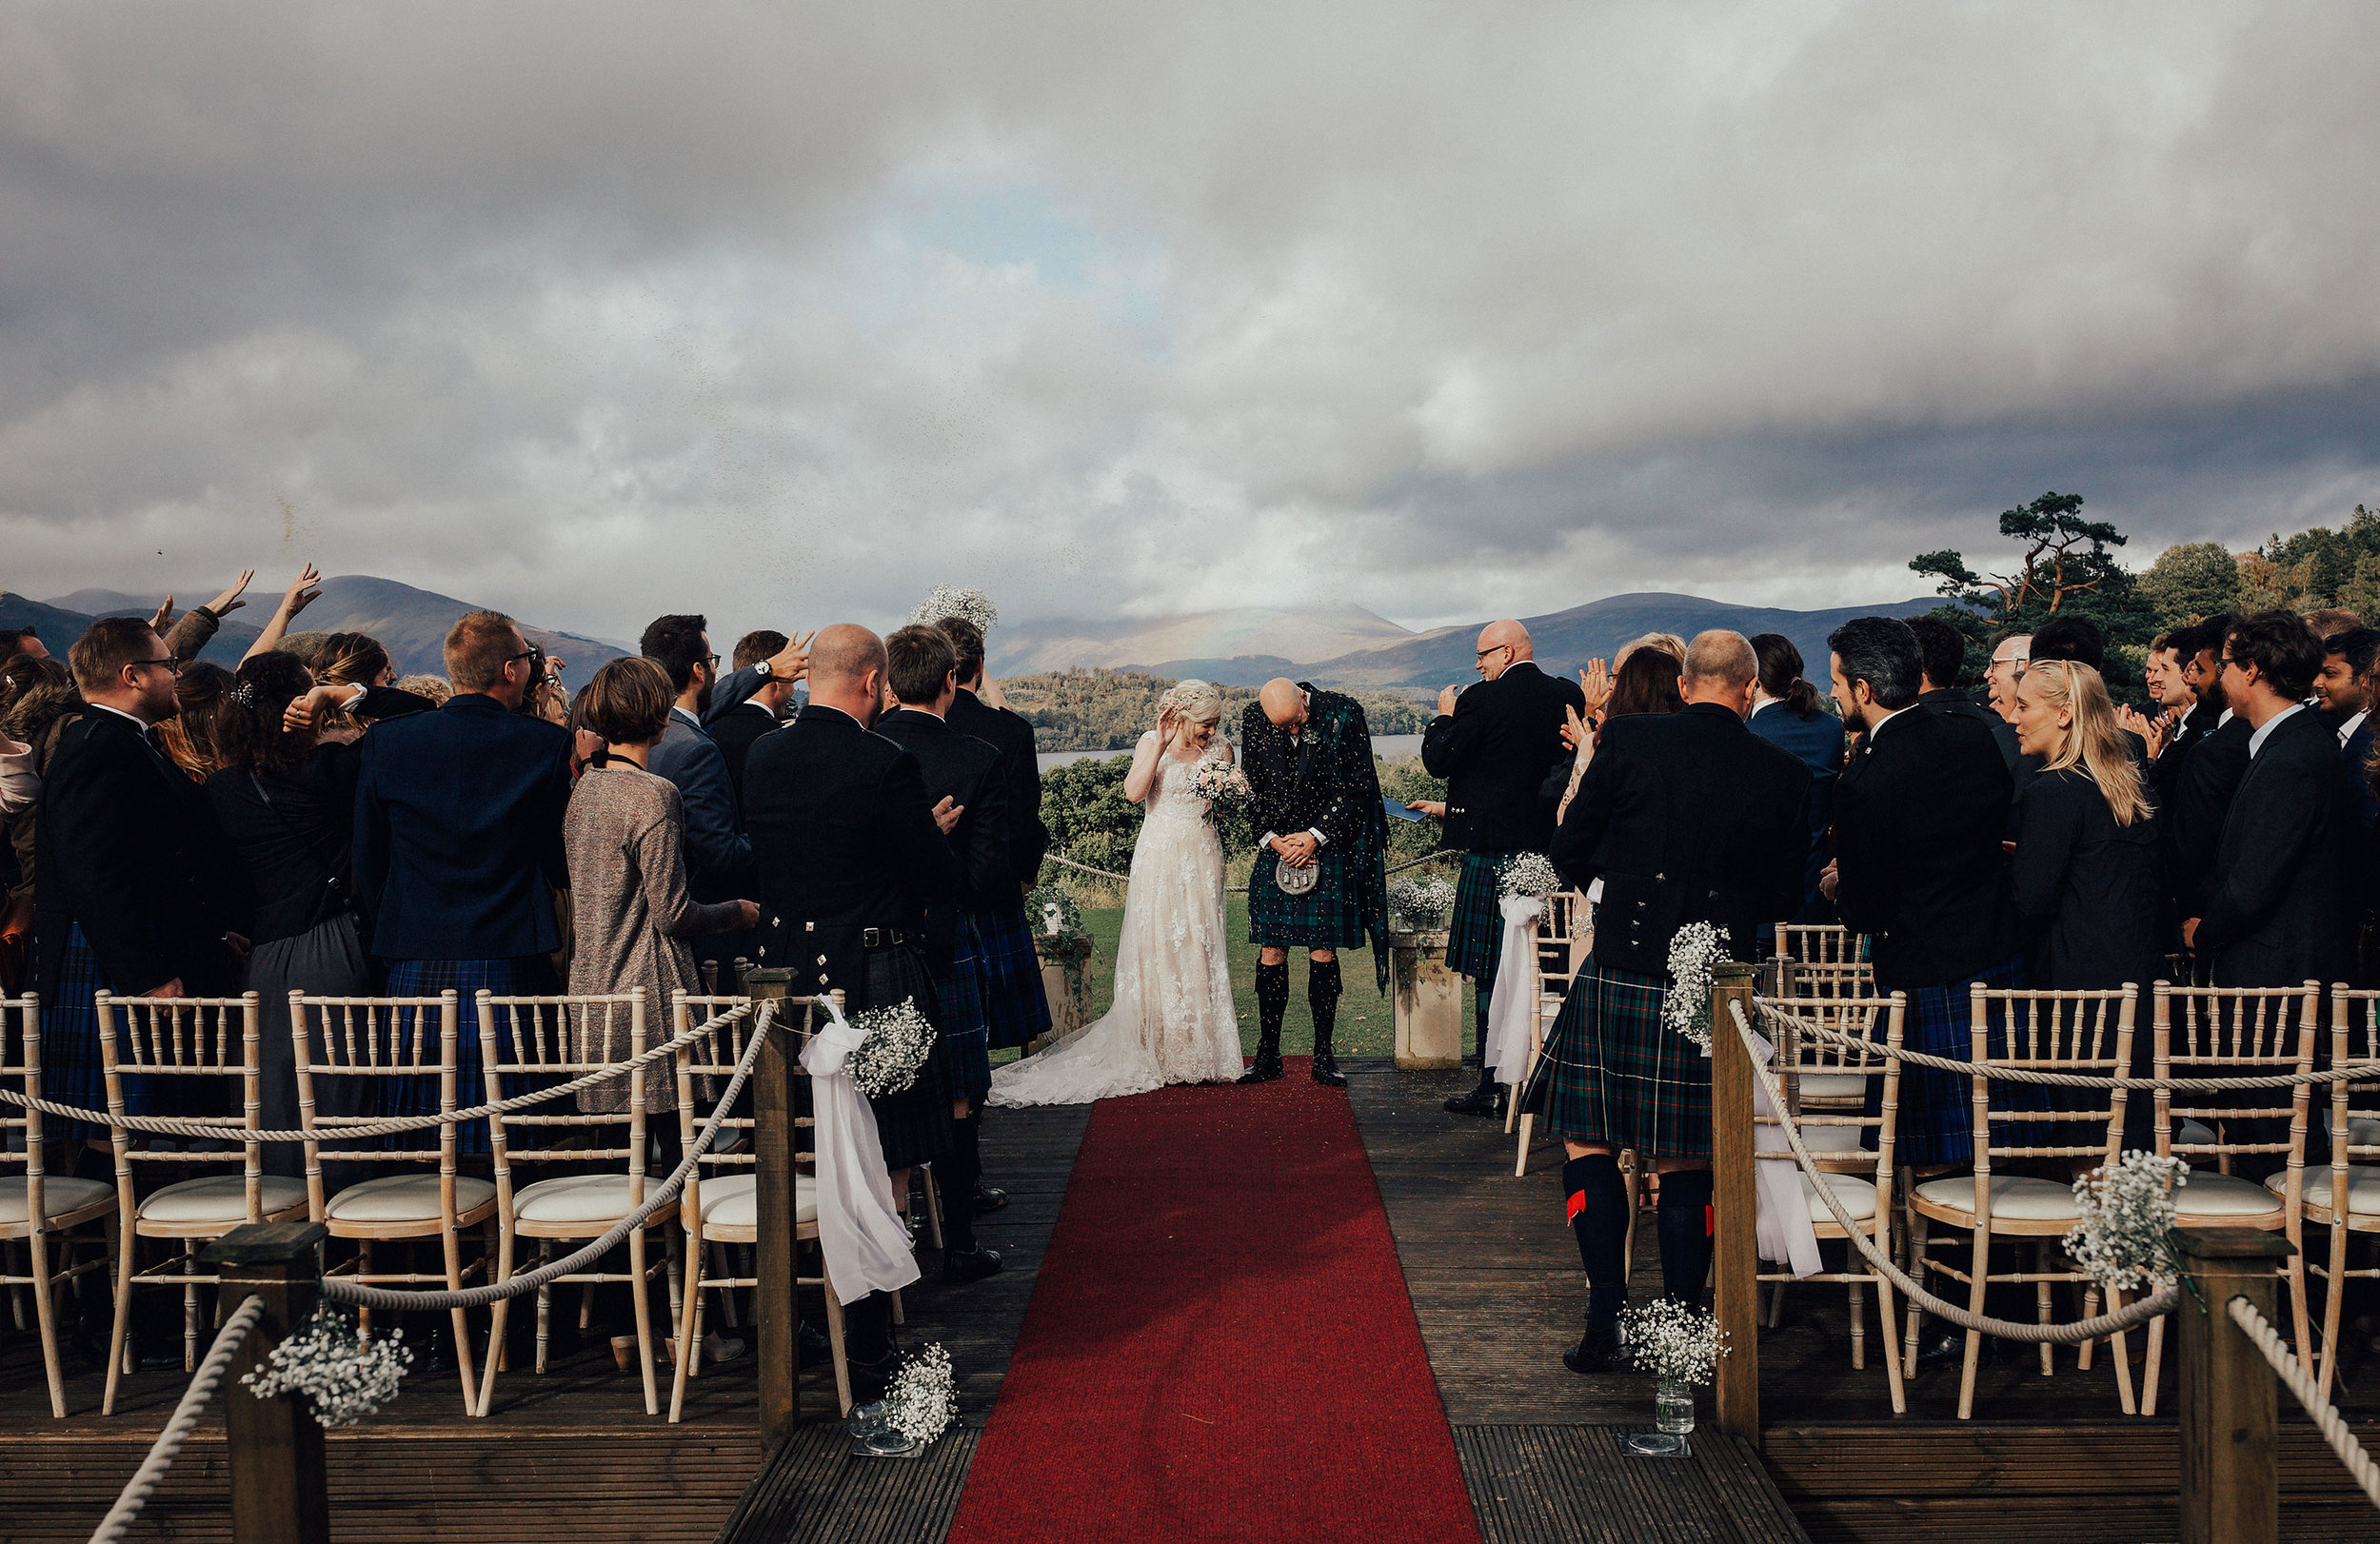 BOTURICH_CASTLE_WEDDING_PHOTOGRAPHER_PJ_PHILLIPS_PHOTOGRAPHY_87.jpg